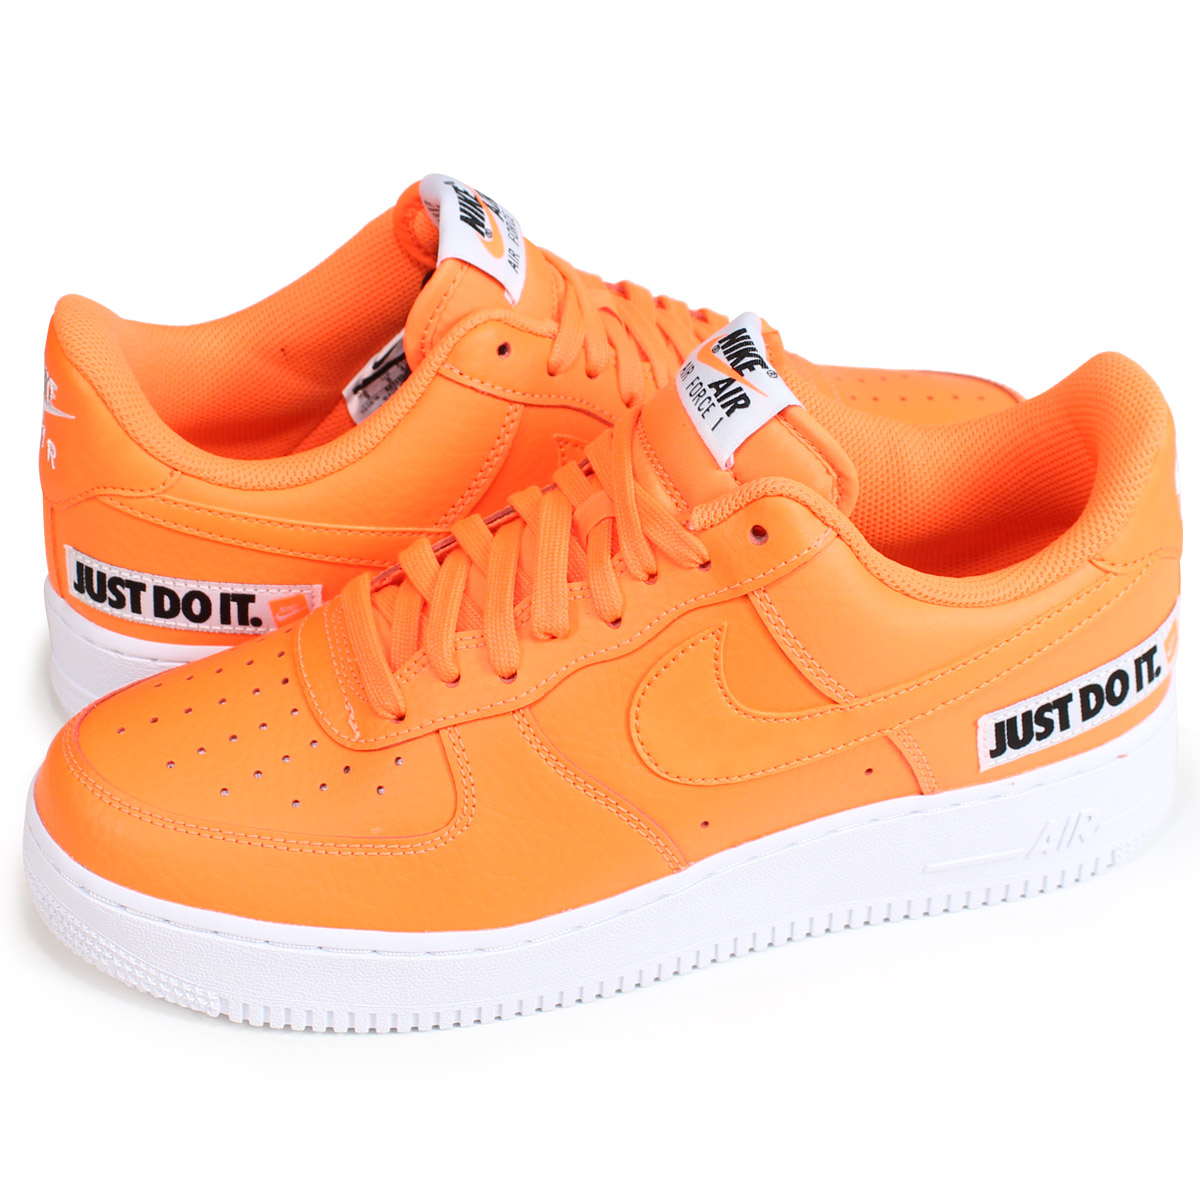 acead33b8f00aa NIKE AIR FORCE 1 07 LV8 JUST DO IT LEATHER Nike air force 1 sneakers men  gap Dis BQ5360-800 orange  load planned Shinnyu load in reservation product  7 24 ...